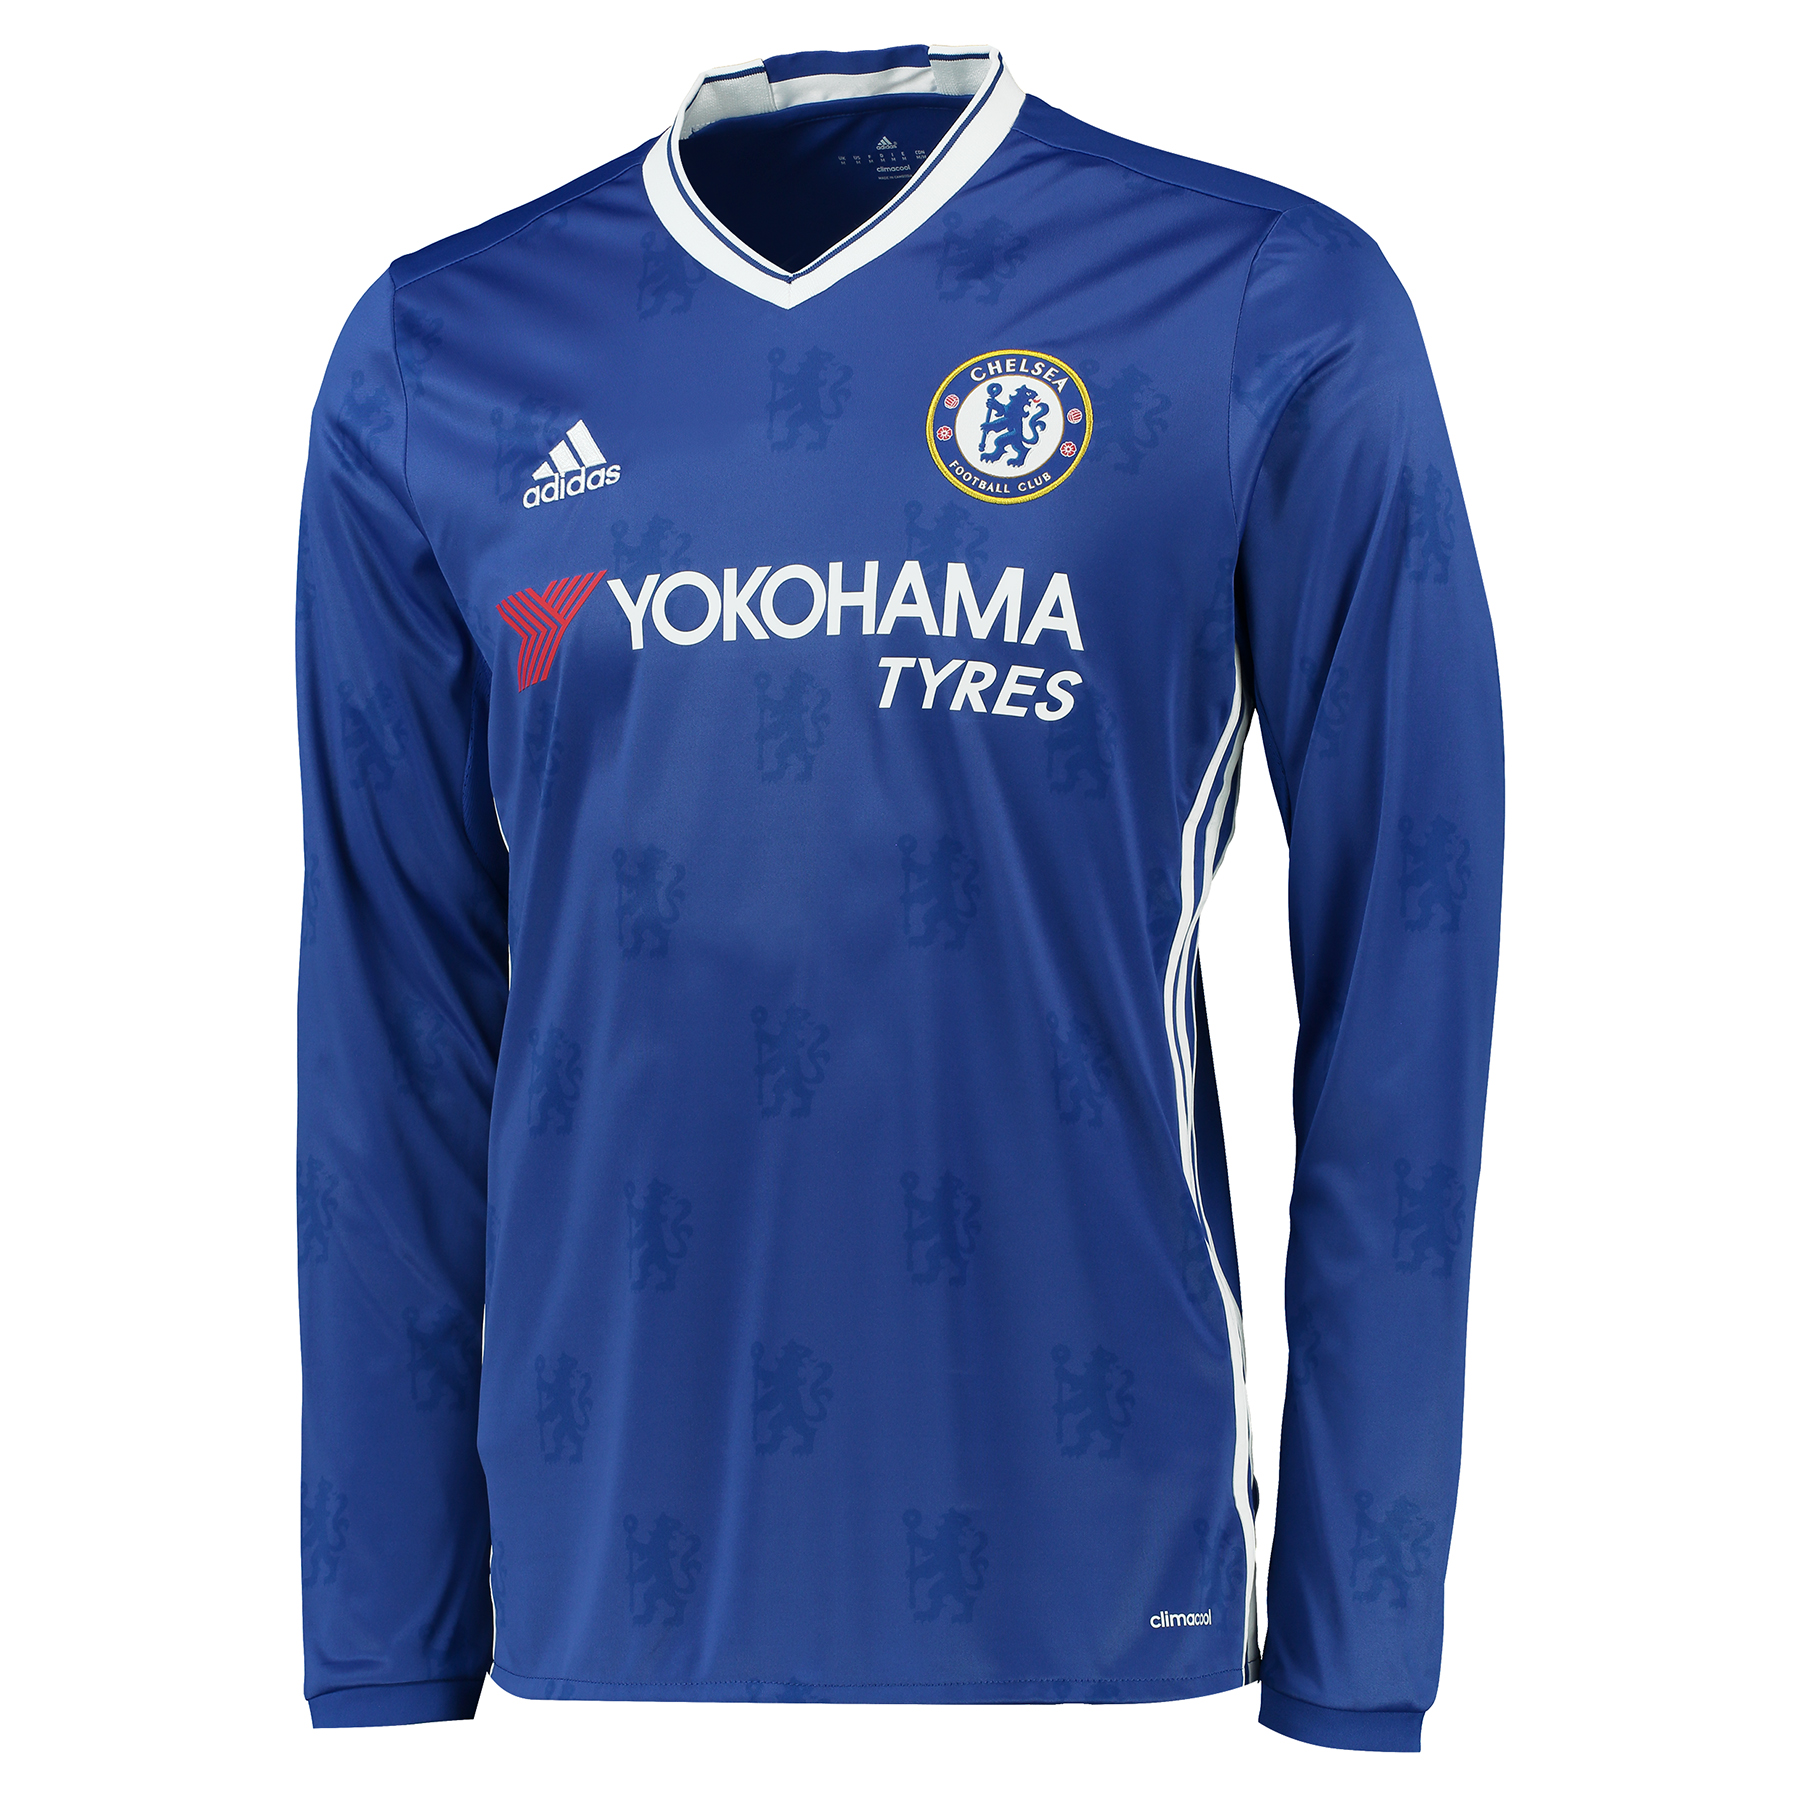 Chelsea Home Shirt 2016-17 - Long Sleeve   Inspired by tradition and shaped by legacy, the official Chelsea Home Shirt 2016-17 - Long Sleeve restores a classic Stamford Bridge image, with its vintage v-collar drawing allusion to Chelsea sides of yesteryear.   With the club crest's central lion motif forming the basis of a unique, all-over pattern print, the 2016-17 long-sleeved Chelsea home jersey's adidas Three Stripe branding features in a contemporary side placement, completing a winning mix of old and new for the Blues' renewed title challenge.   Benefits:   Climacool® heat and moisture management Printed fabric Club crest: woven badge Engineered Chelsea FC sign off on collar 100% recycled polyester